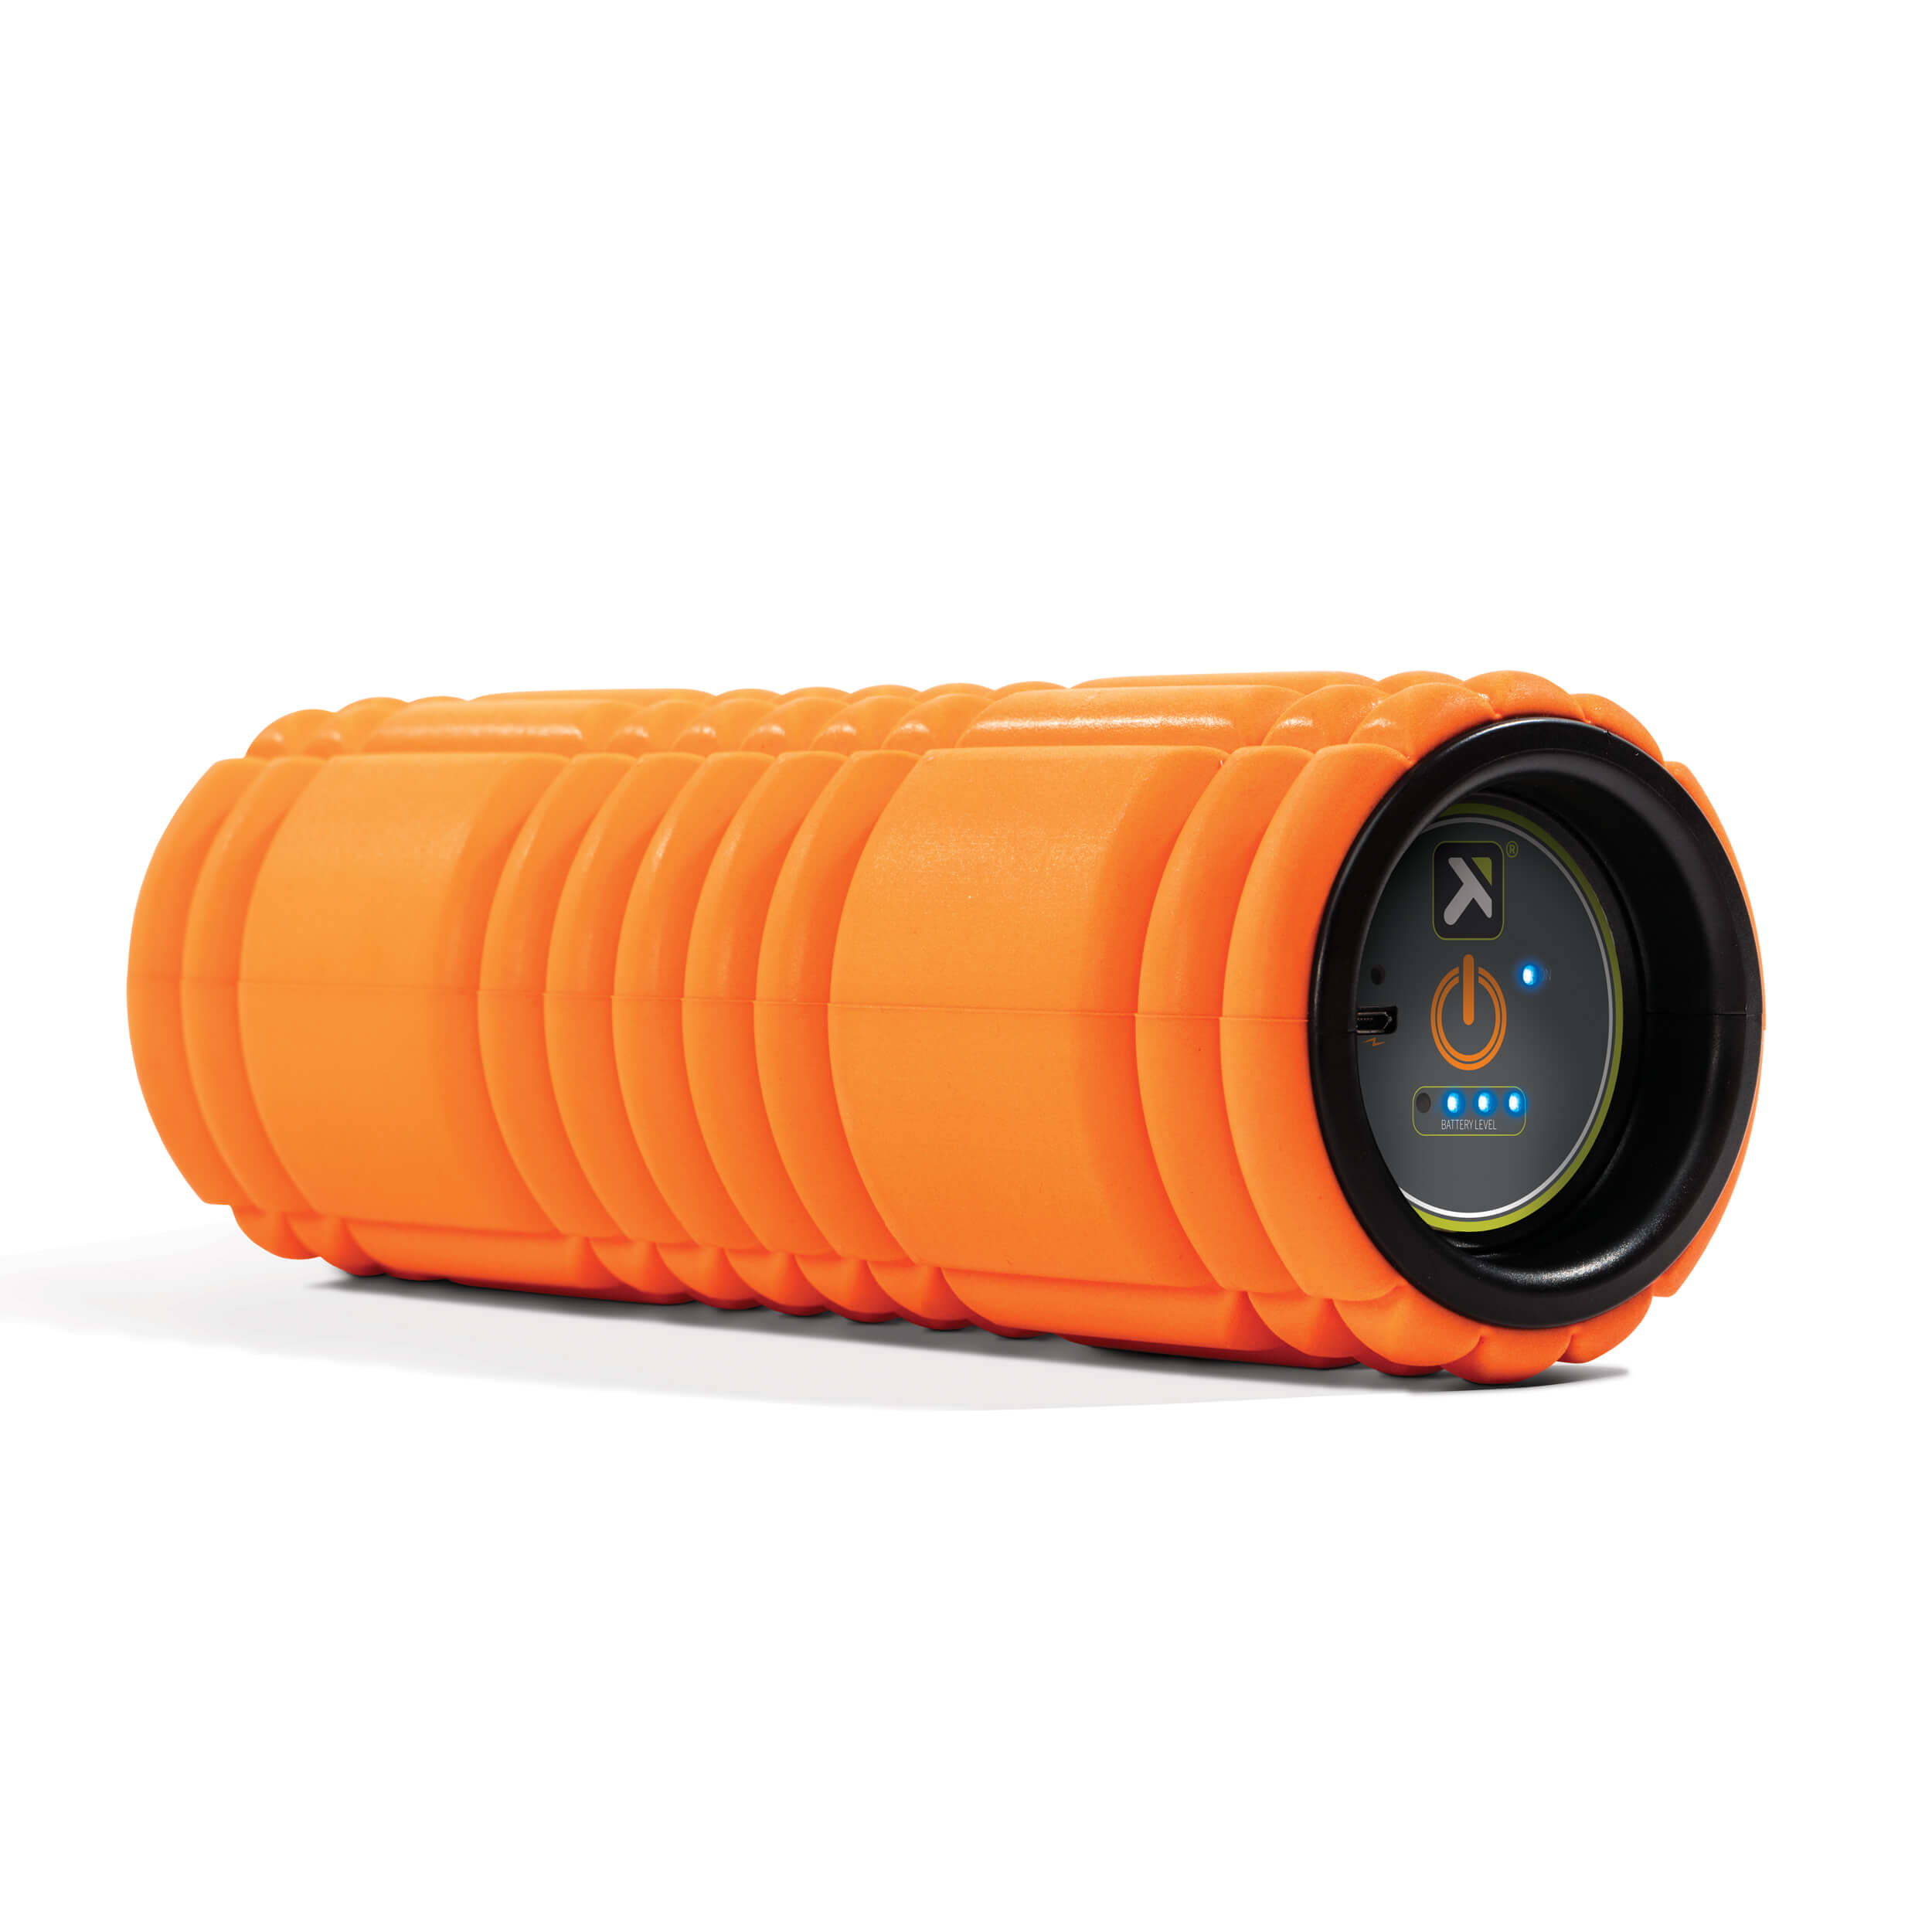 Trigger Point Performance GRID VIBE Vibrating Foam Roller